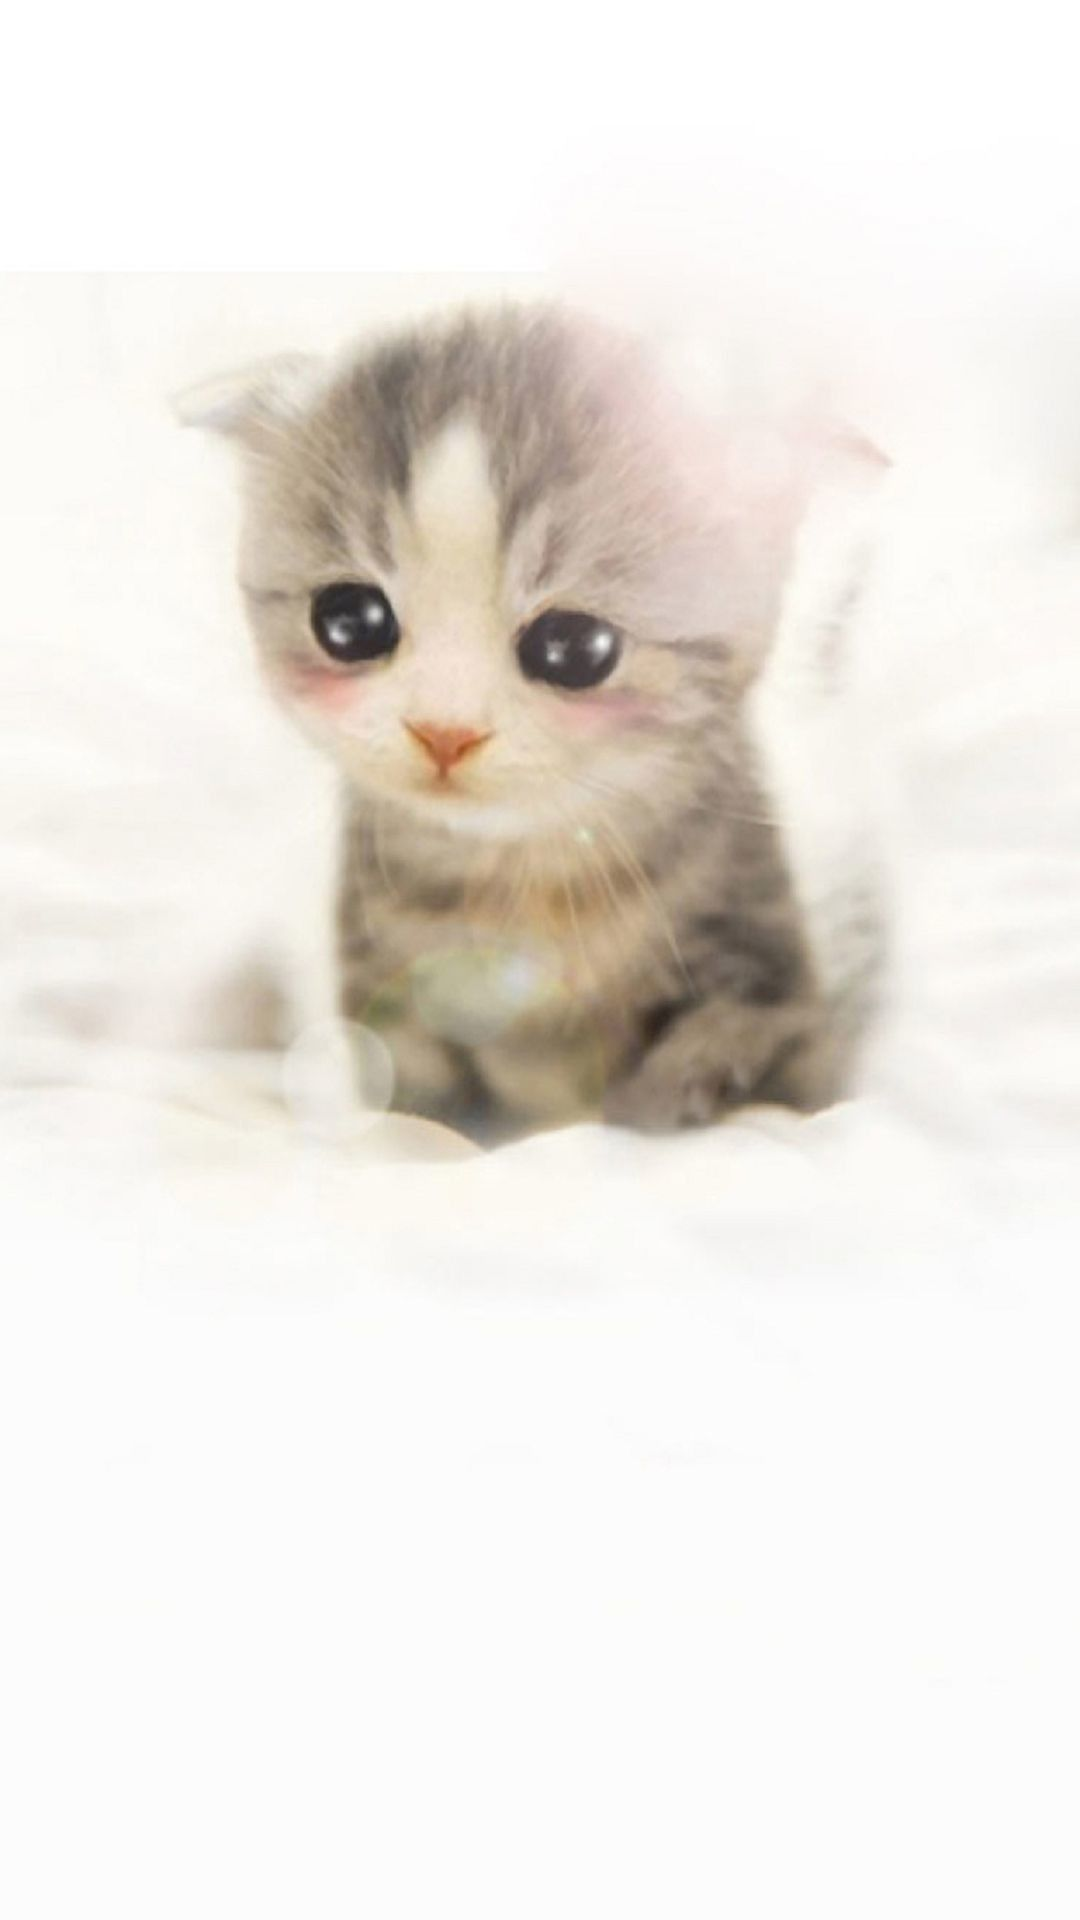 60 Cute Animals Iphone Wallpapers You Would Love To Download Cute Animals Animal Wallpaper Animals